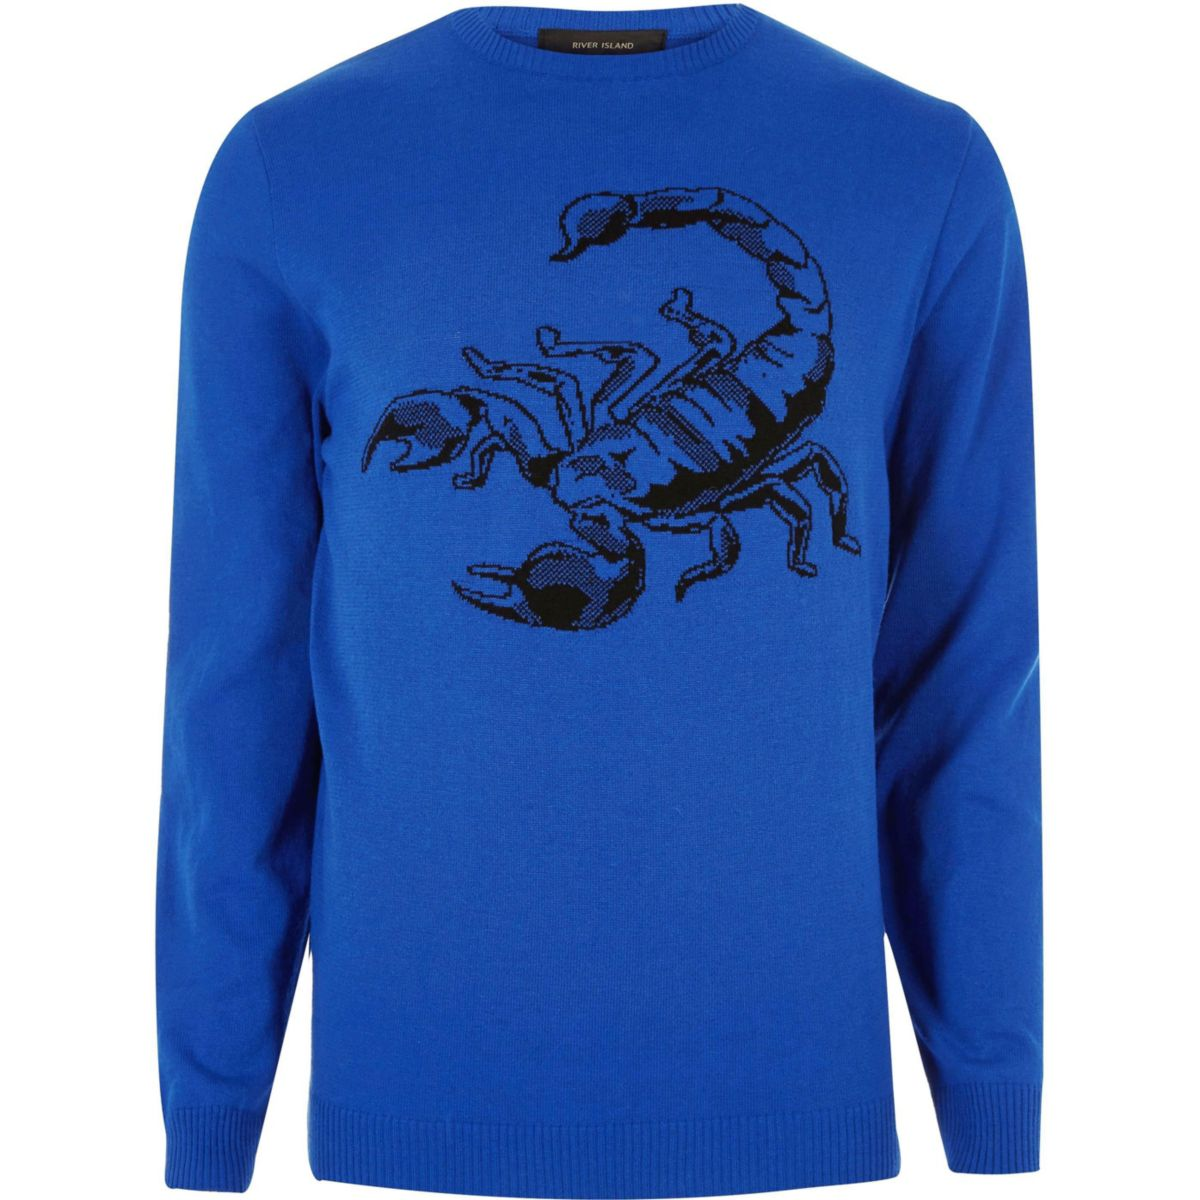 Big and Tall blue knit scorpion sweater